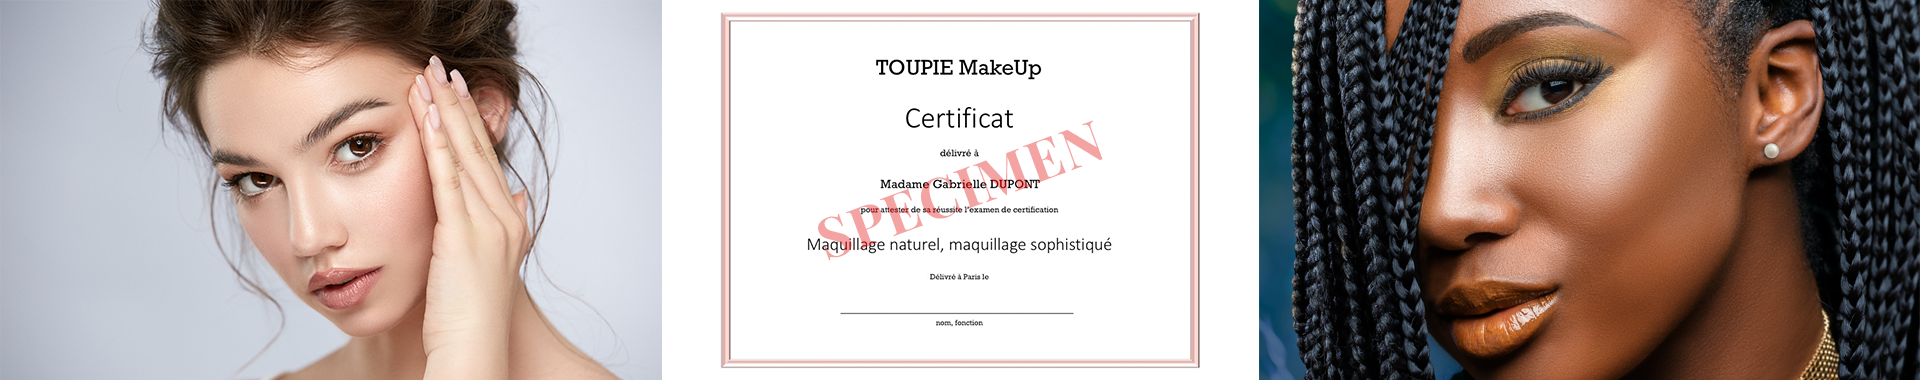 picture_maquillage-naturel_certificat